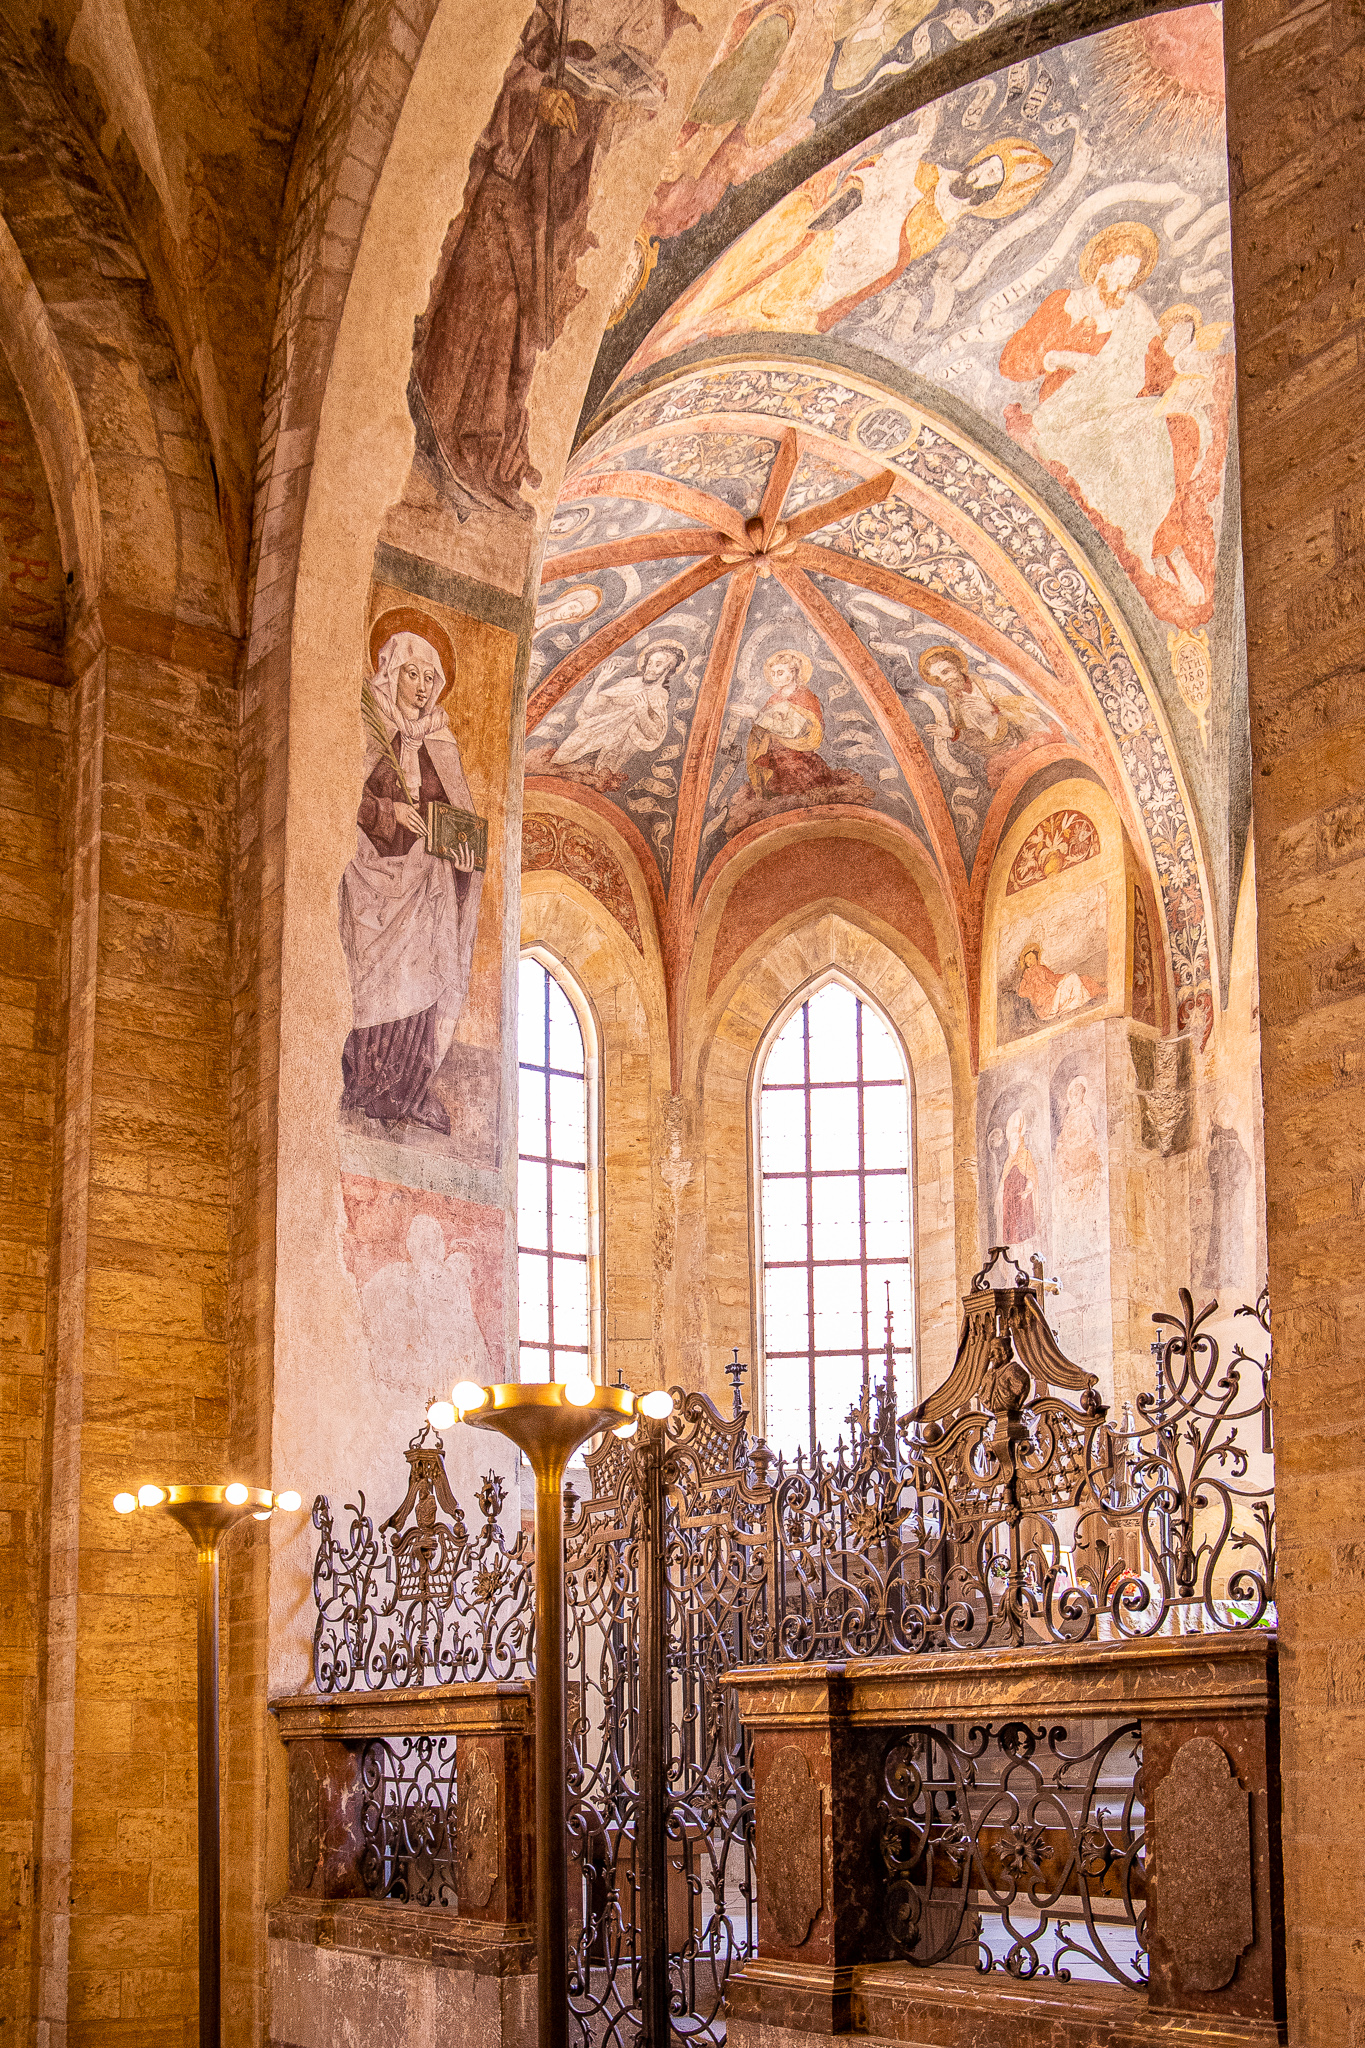 Stunning wall and ceiling frescoes